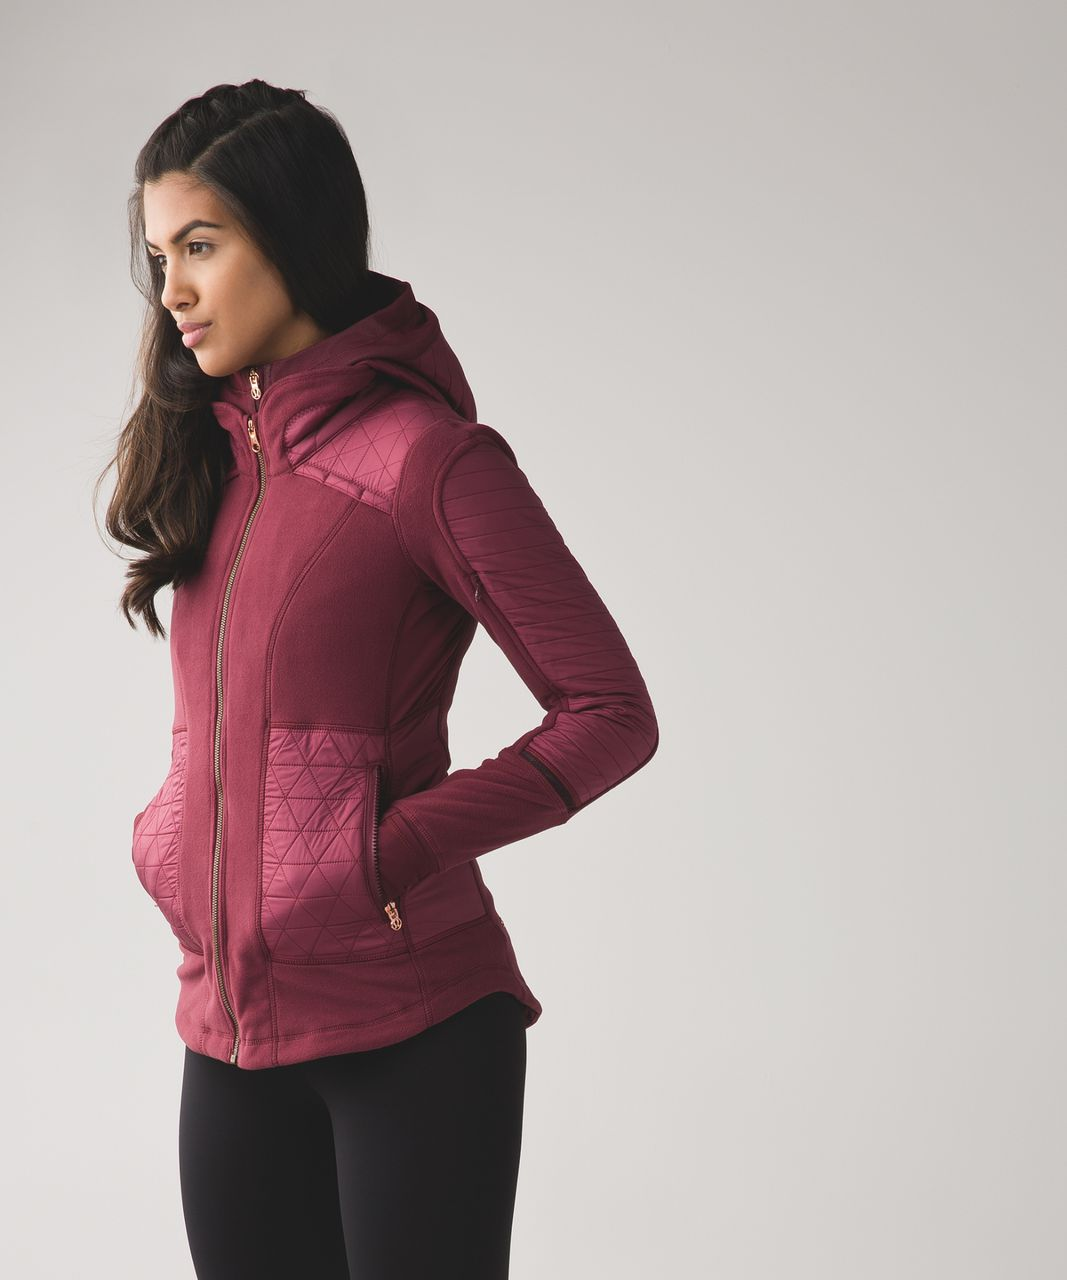 Lululemon Fleecy Keen Jacket III - Wine Berry